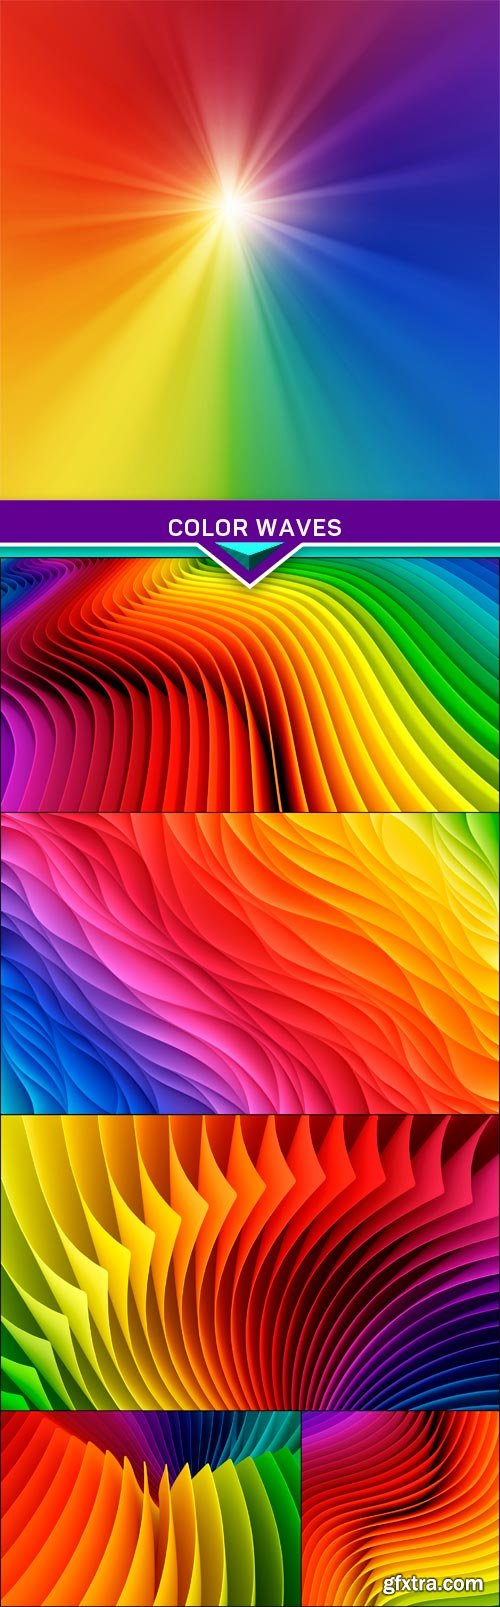 Color waves Abstract background 6x JPEG